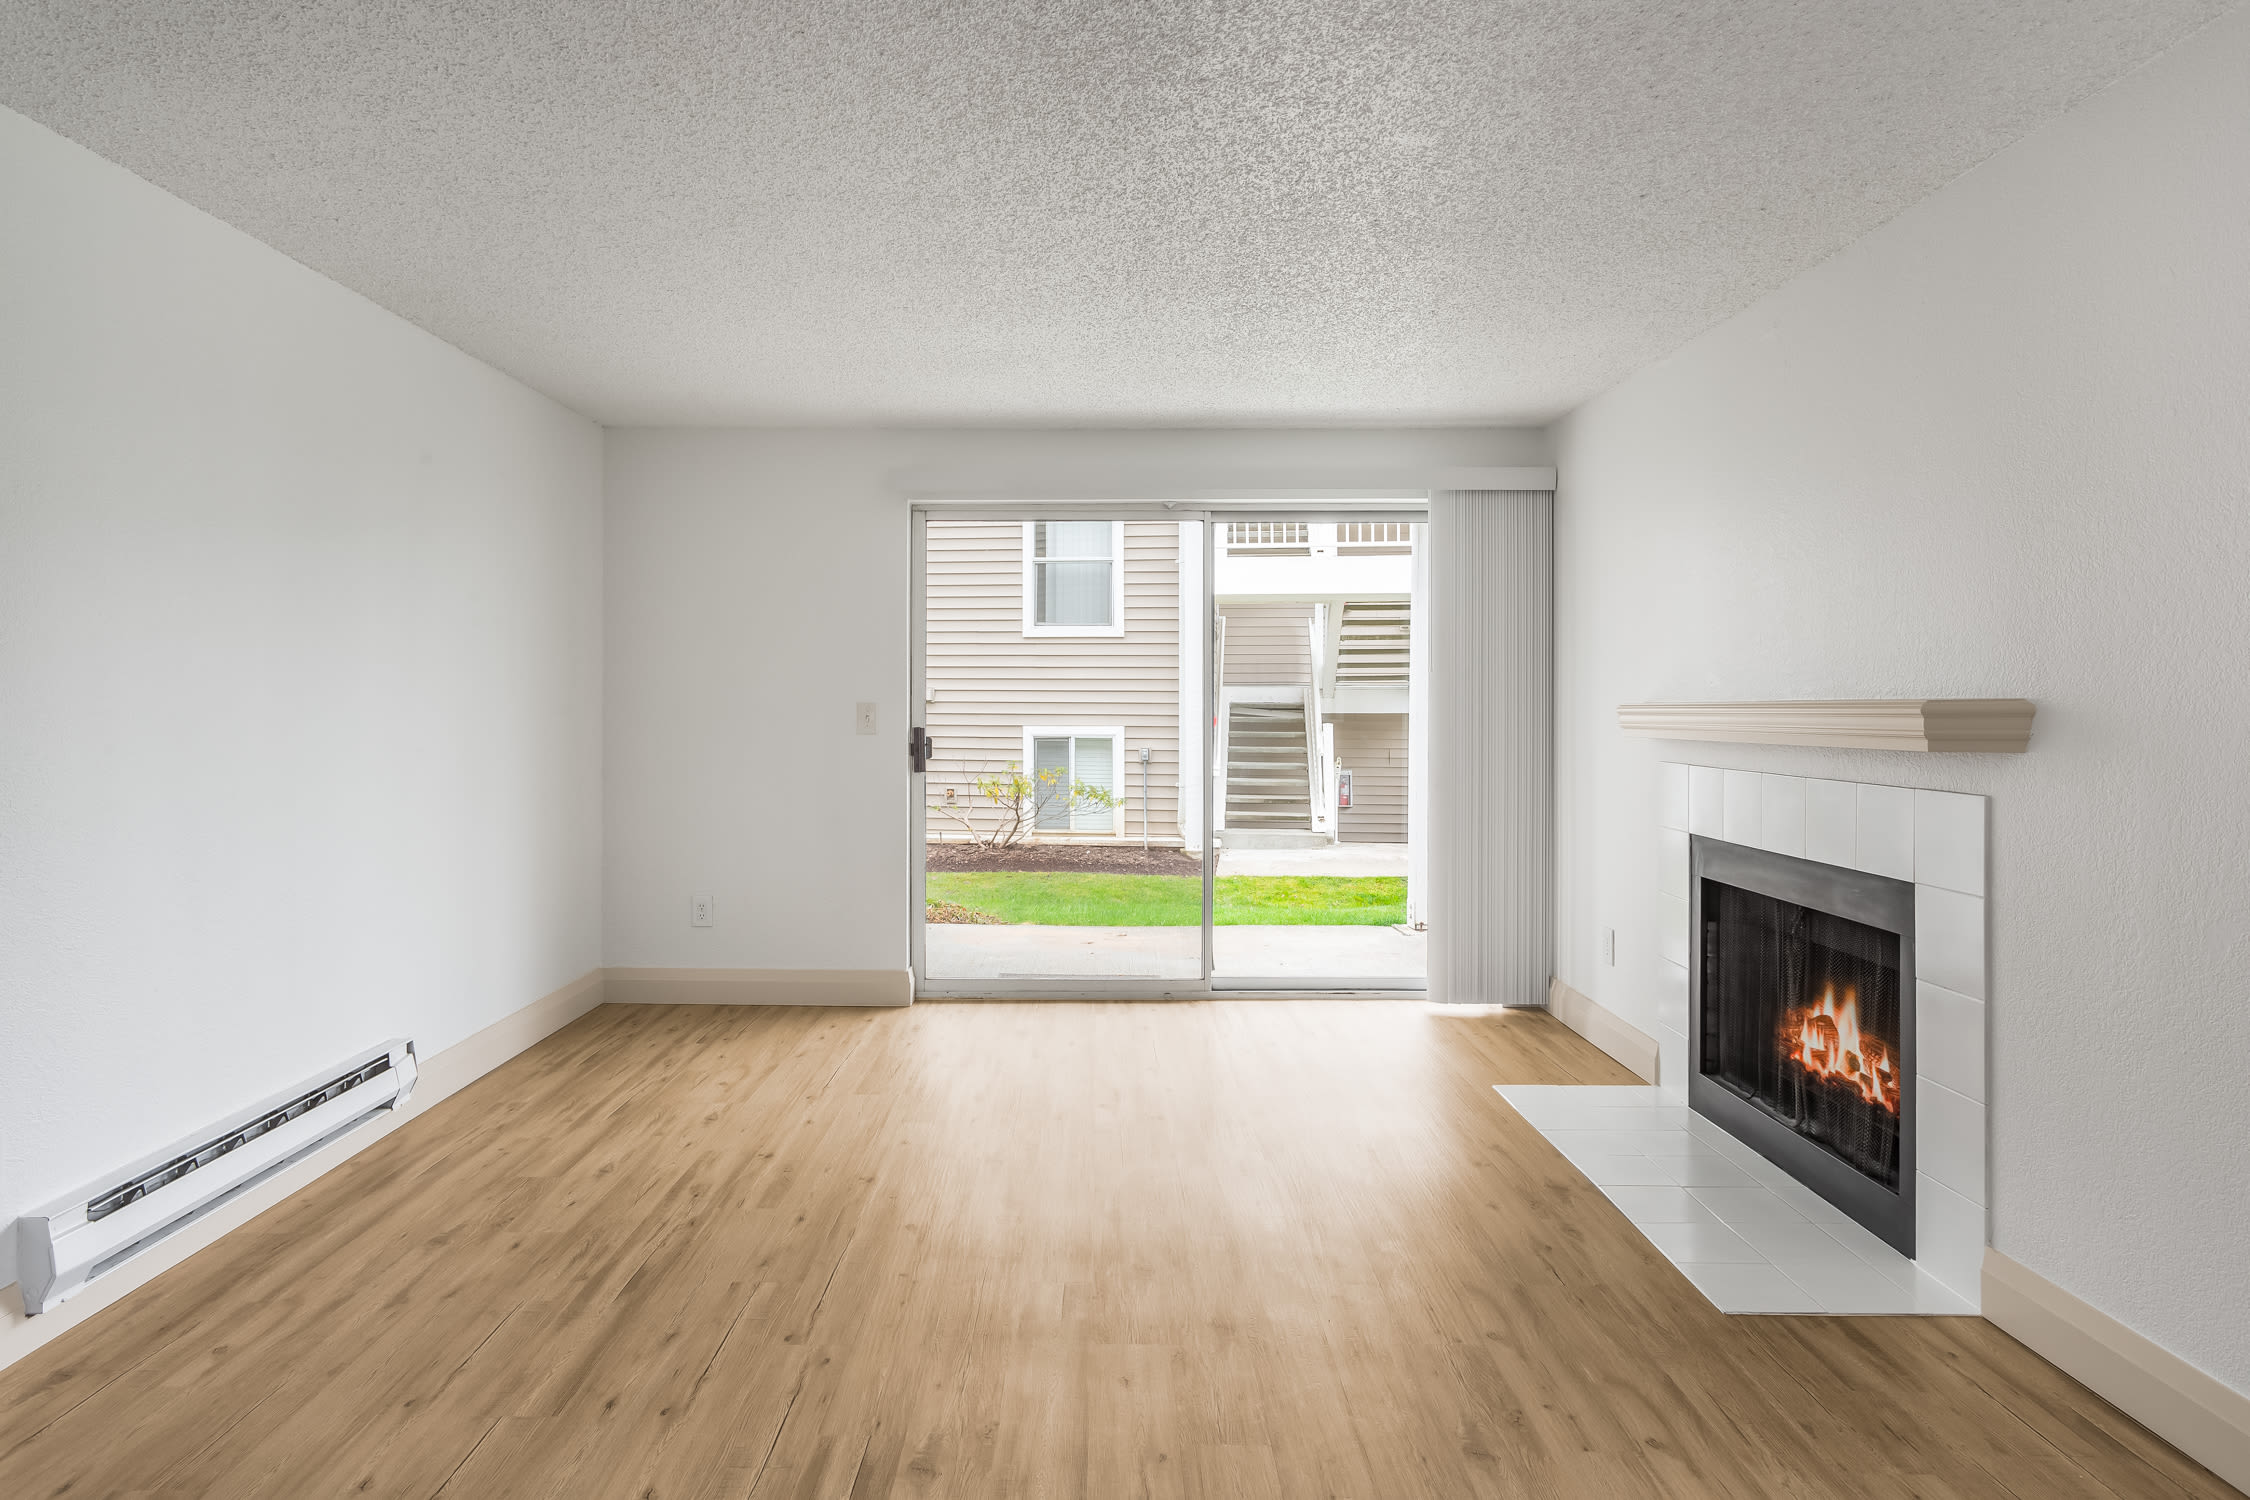 Living room with fireplace of Alaire Apartments in Renton, Washington